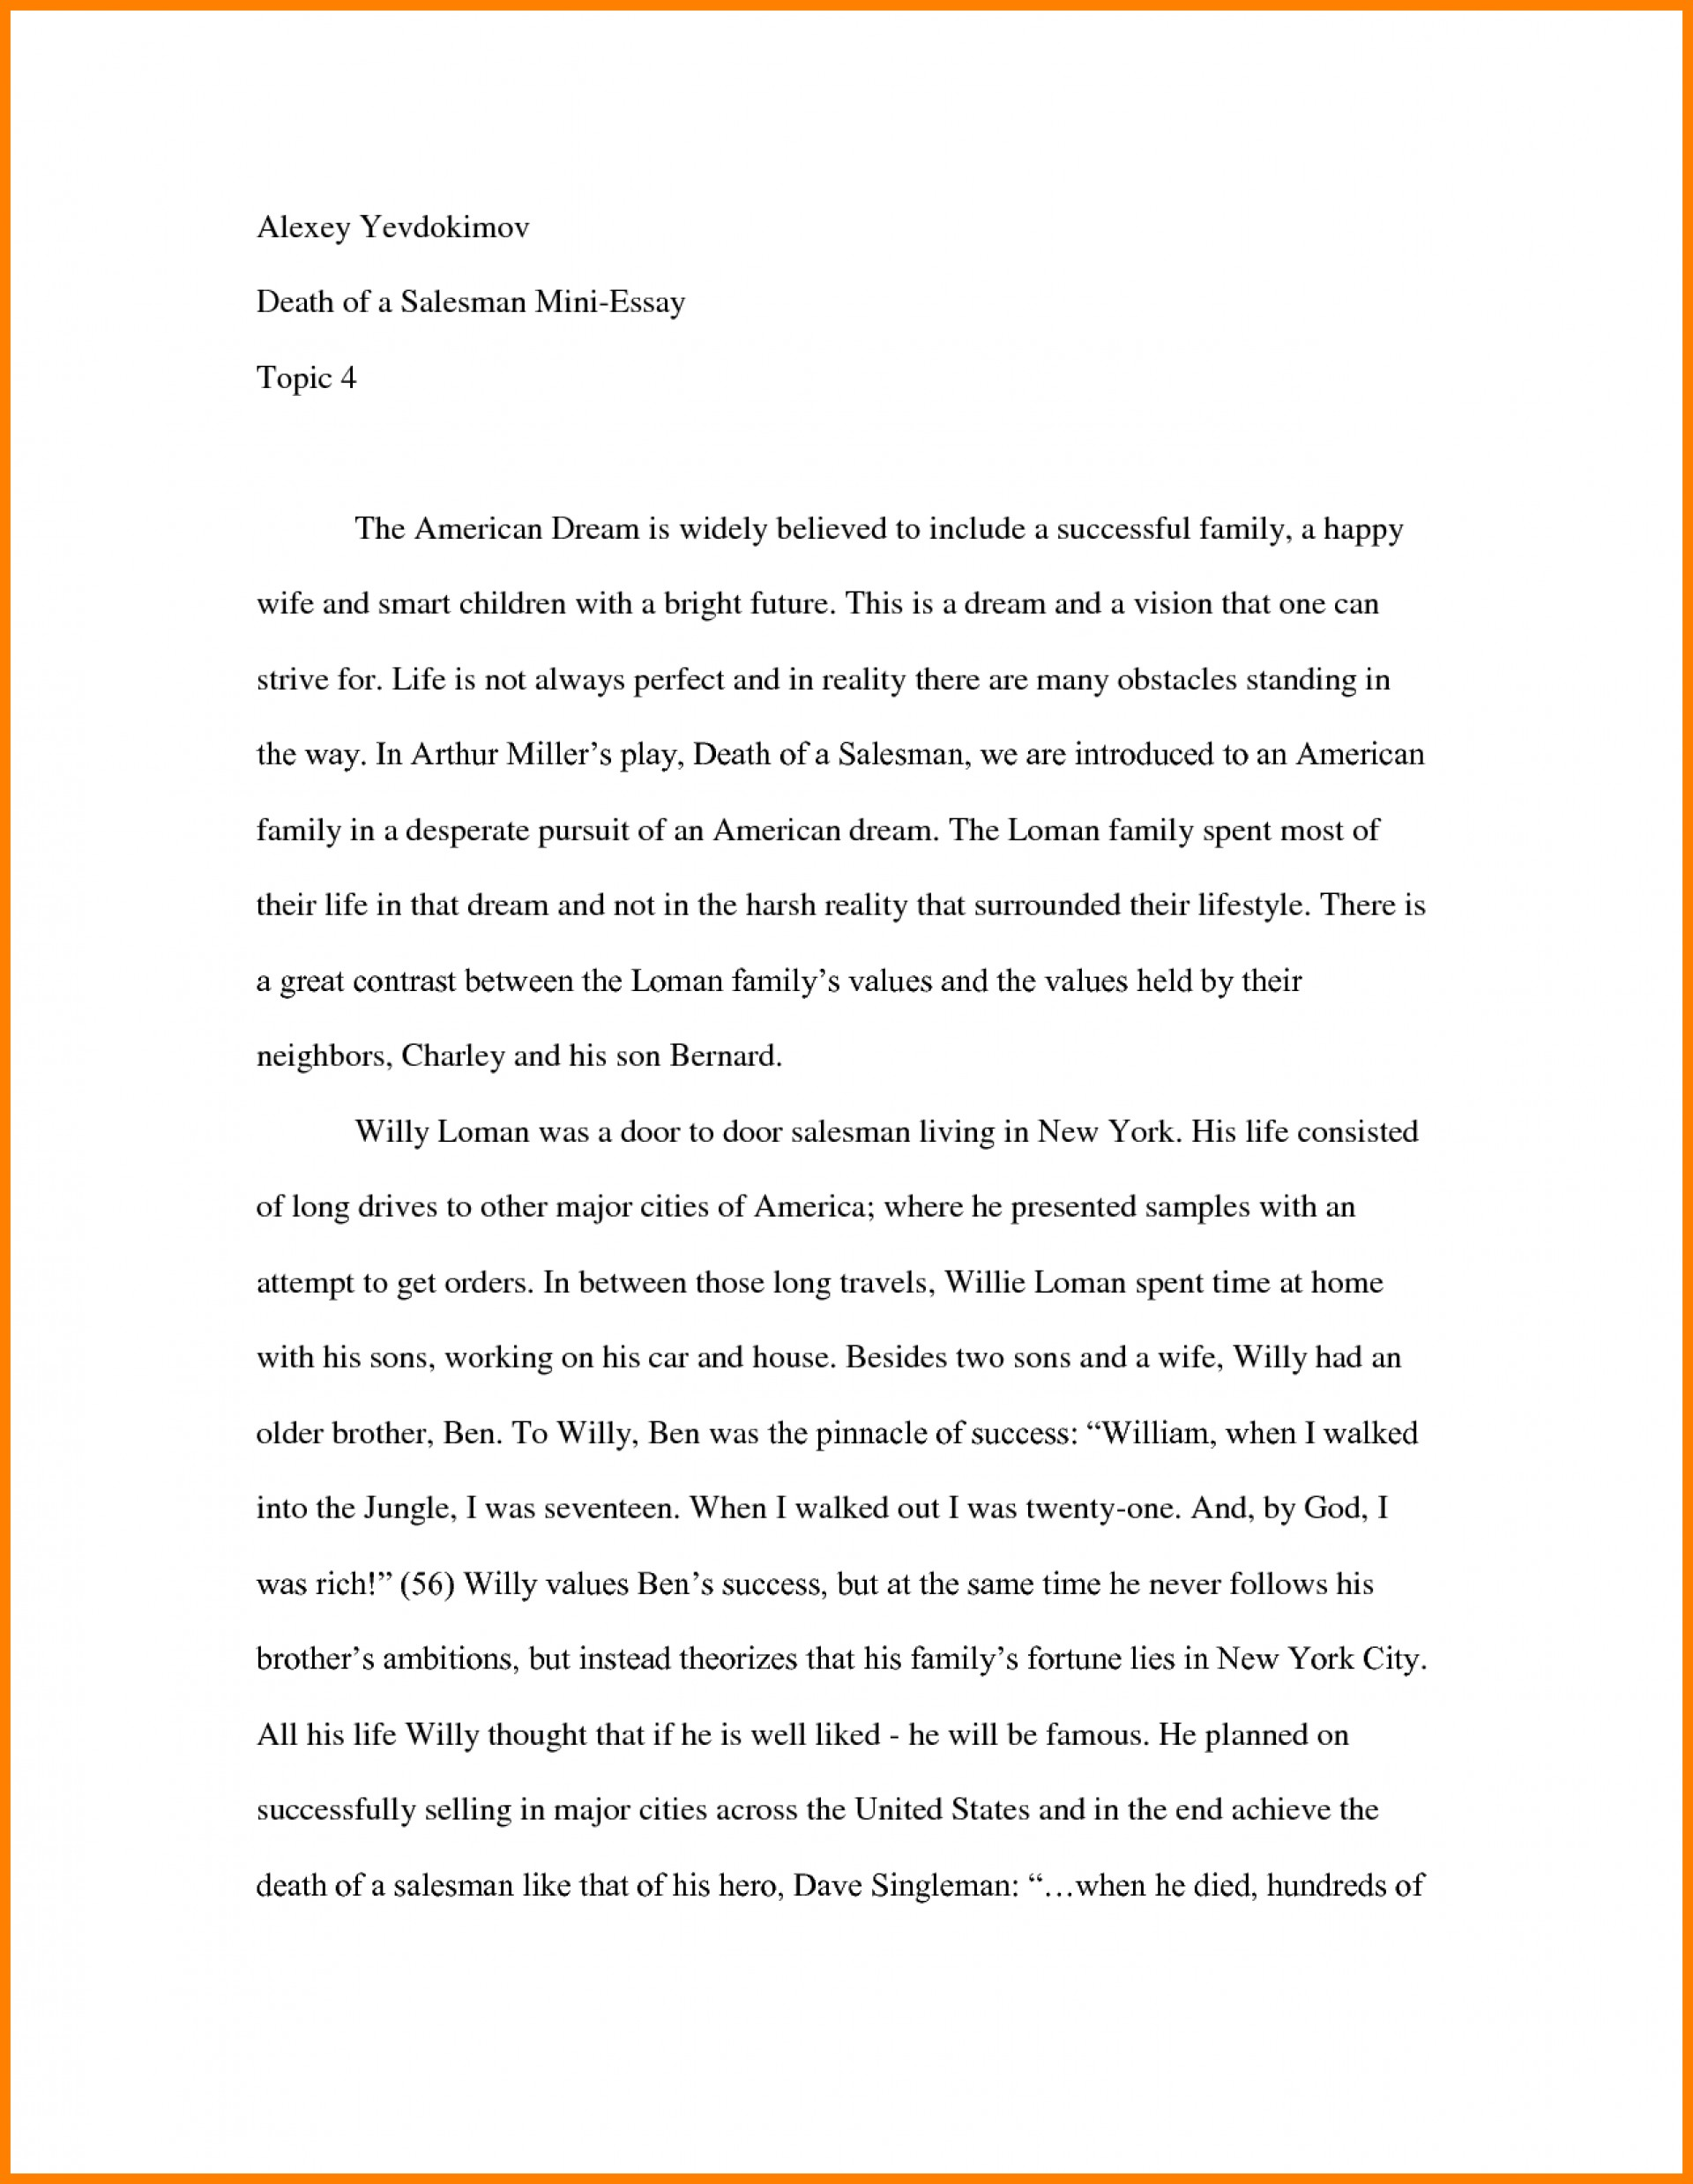 004 Essay Example How To Start Off An About Yourself Amazing Analysis On A Book Ways With Question Two Books 1920